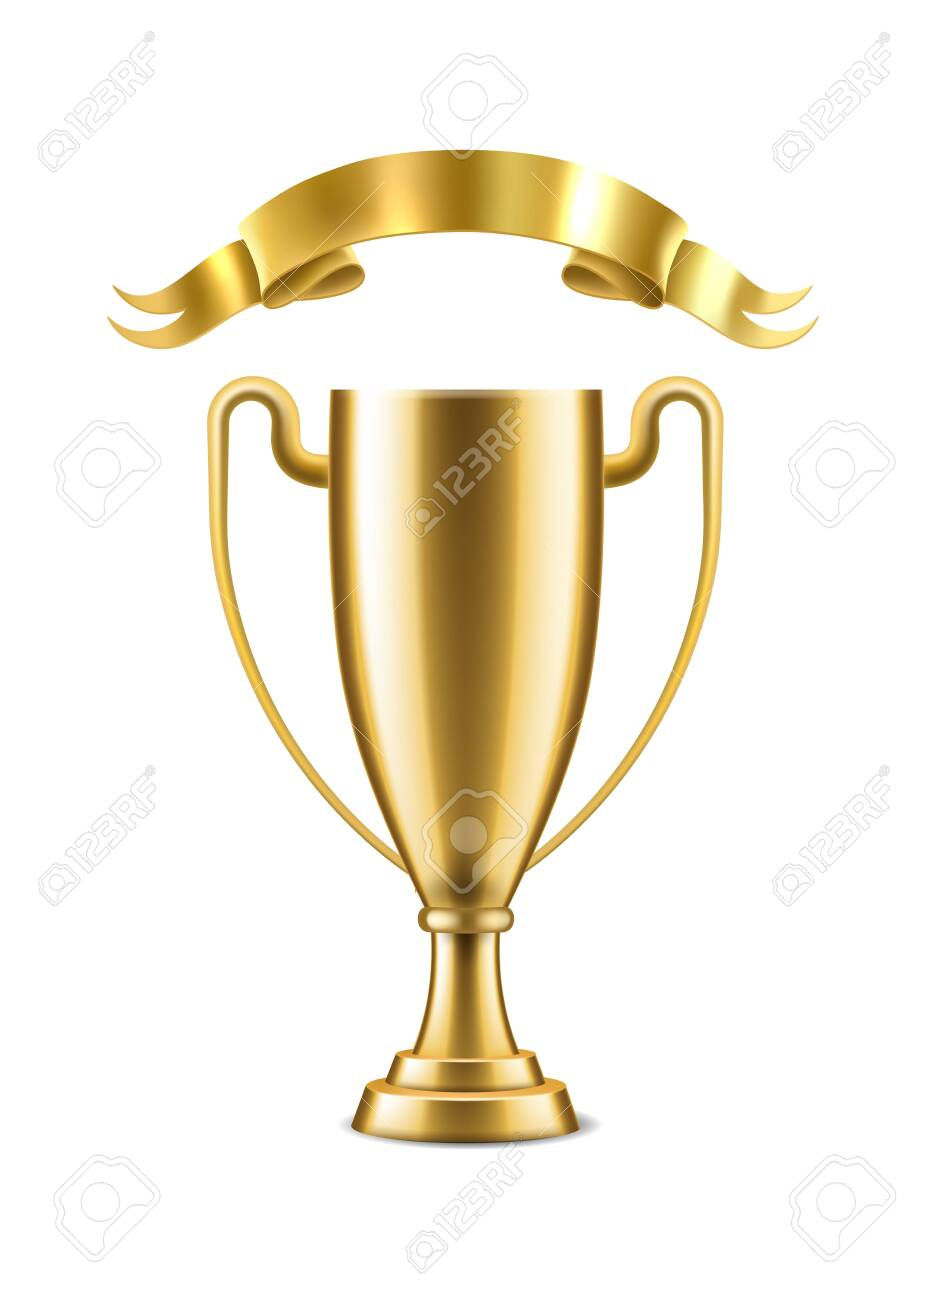 Champion gold cup. Winner golden cup trophy isolated on white background vector realistic victory award - 142629789